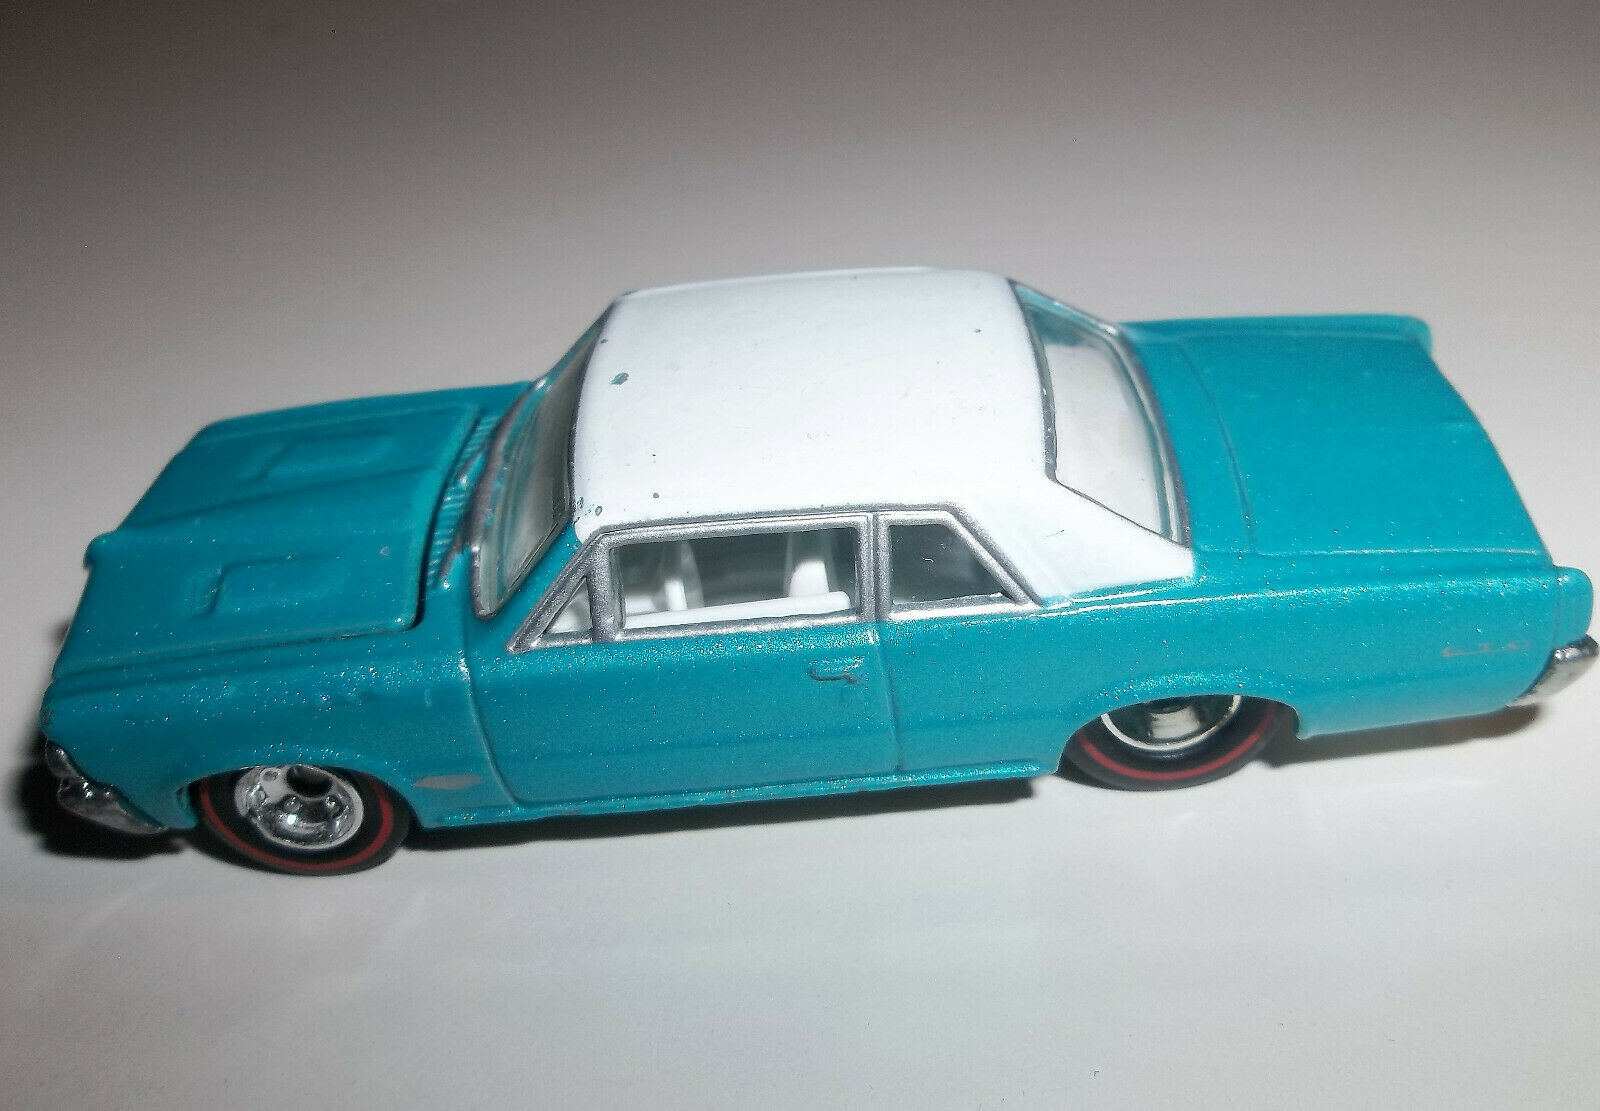 Hot Wheels Redline Pontiac GTO - - - Teal with White Interior & Roof  - '64 1964 7336f0